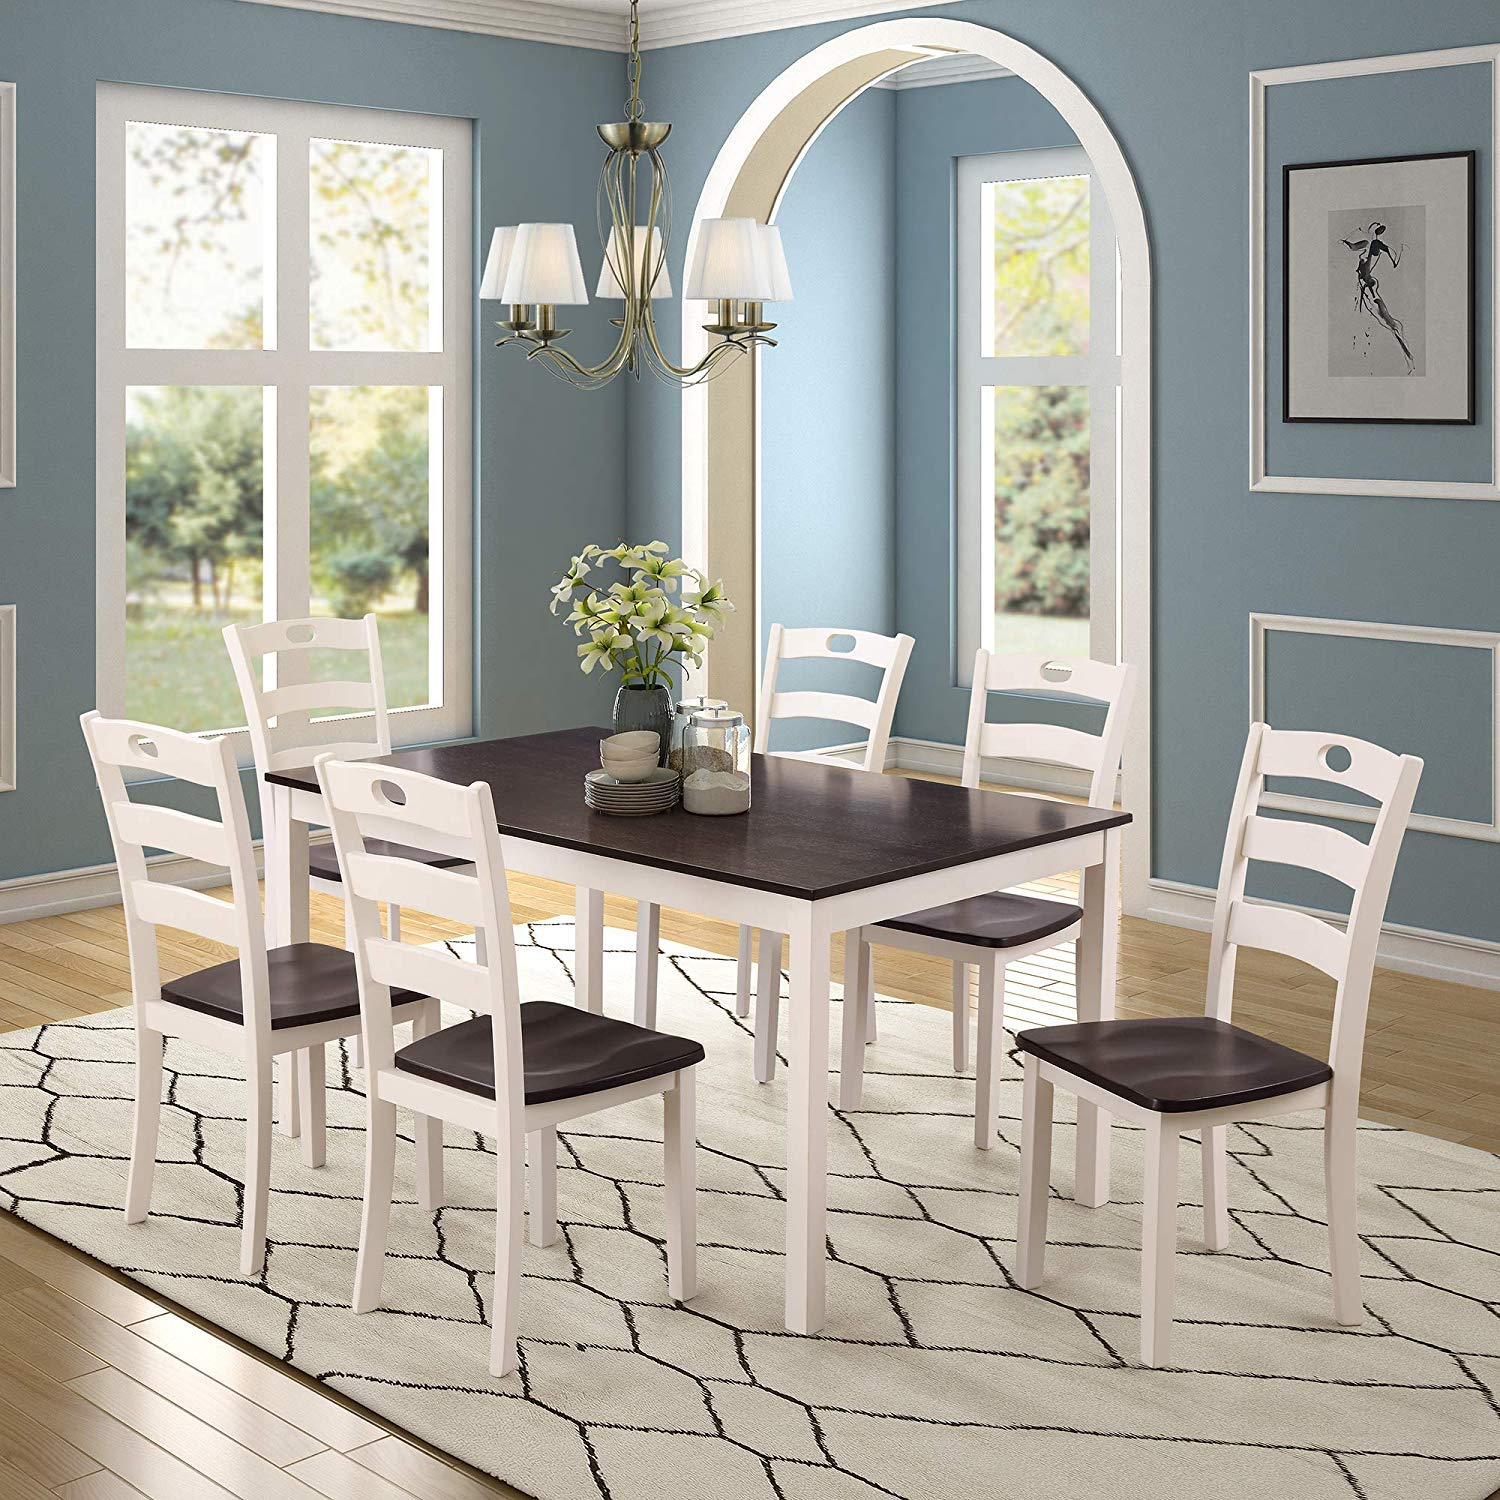 Merax Dining Table Set for 9, Kitchen Table Sets Wood Dining Table with 9  Chairs and Exquisite Dining Room Furniture (White)